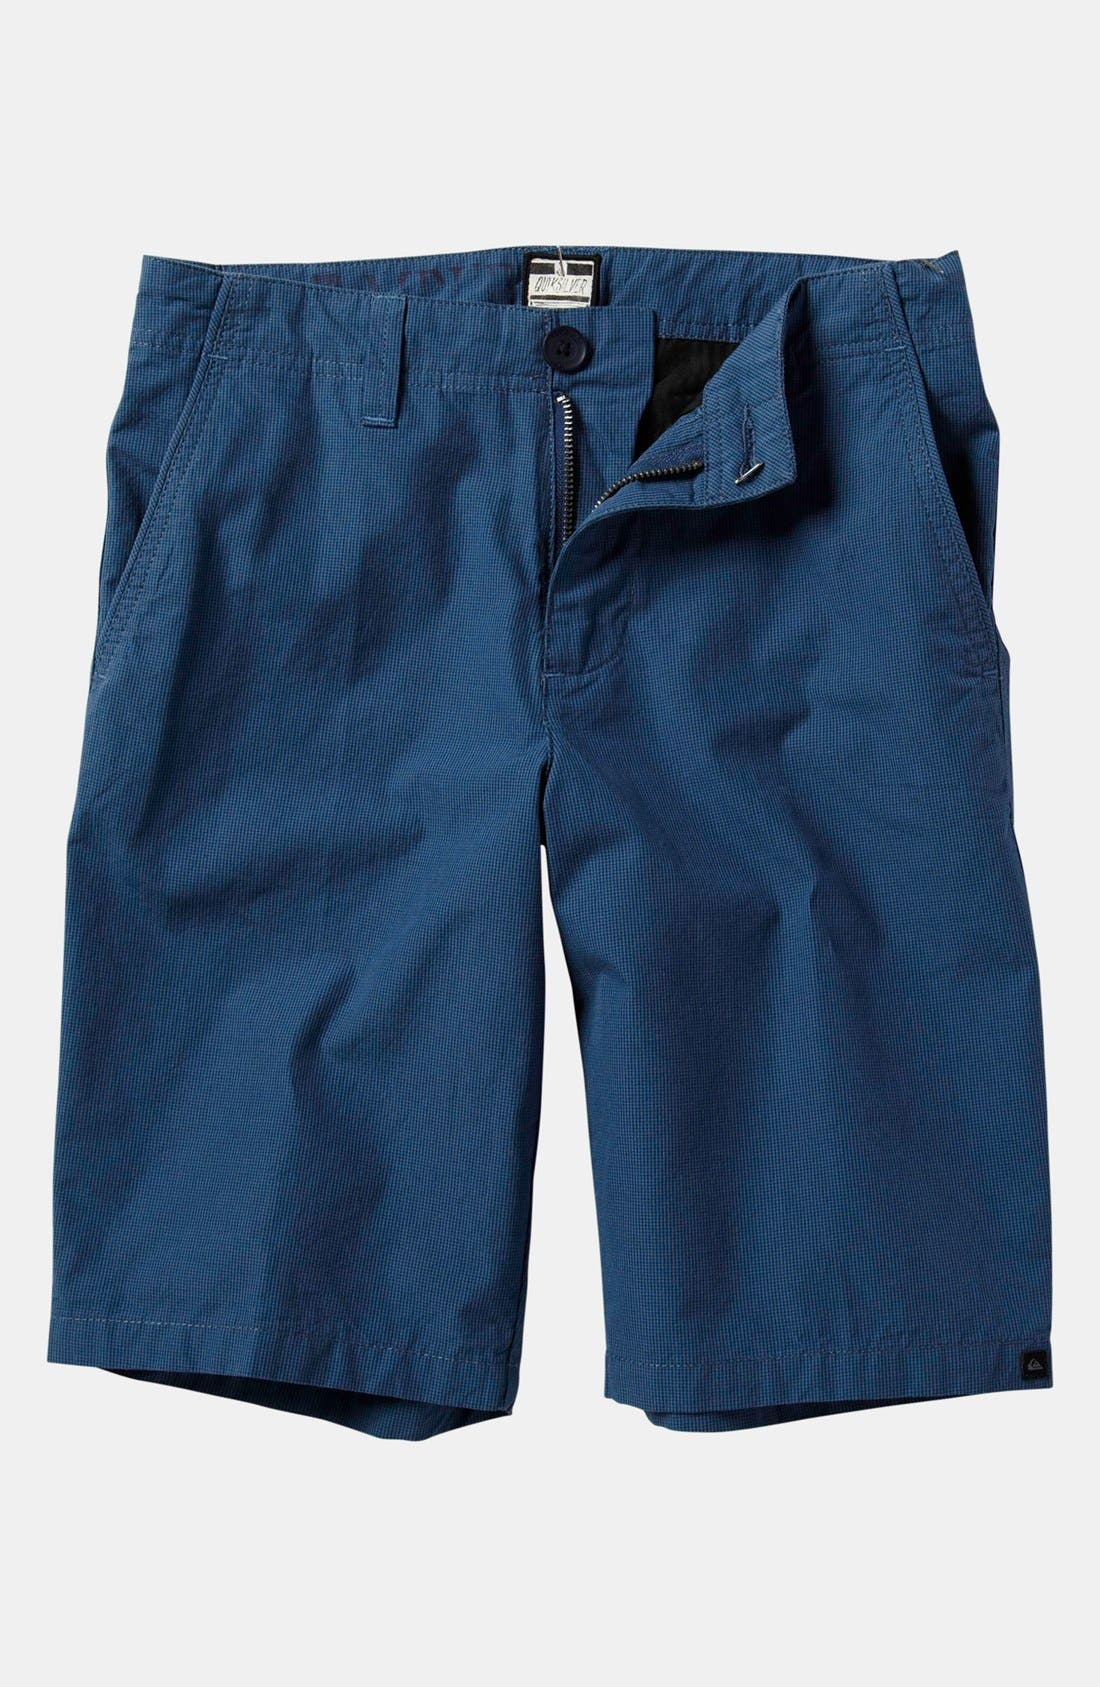 Main Image - Quiksilver 'Nugget' Shorts (Big Boys)